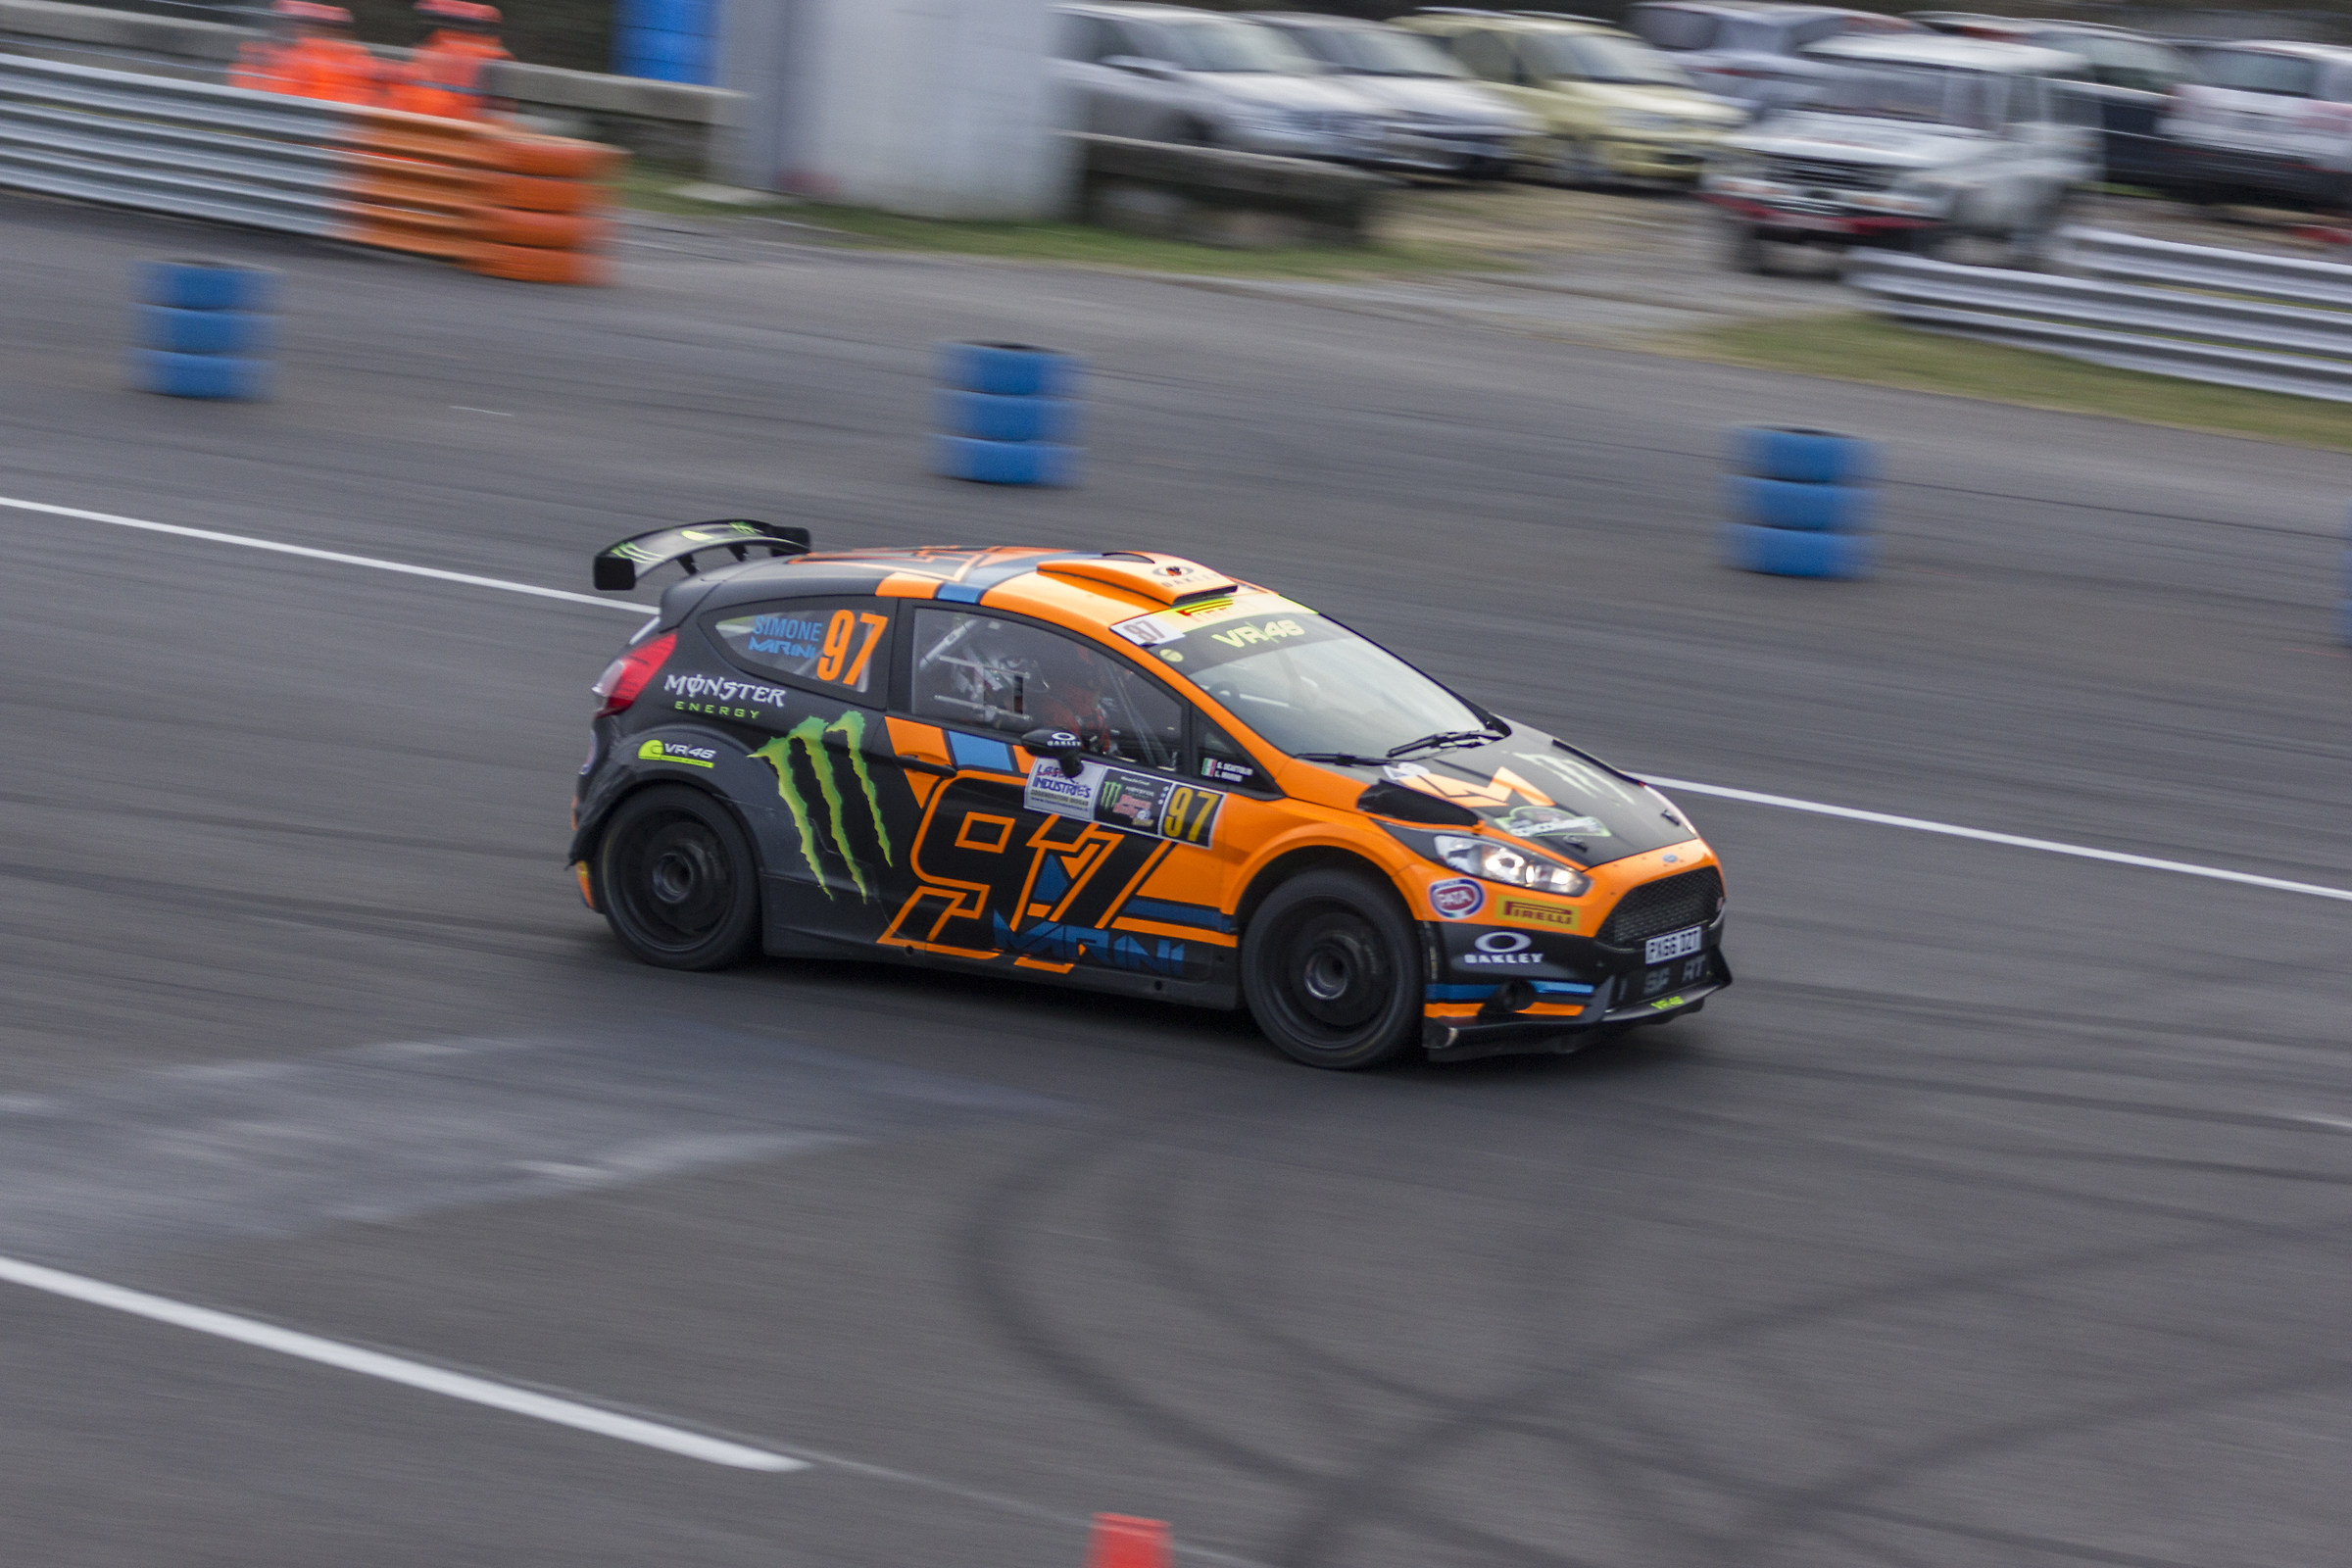 Luca Marini at the Monza rally show...